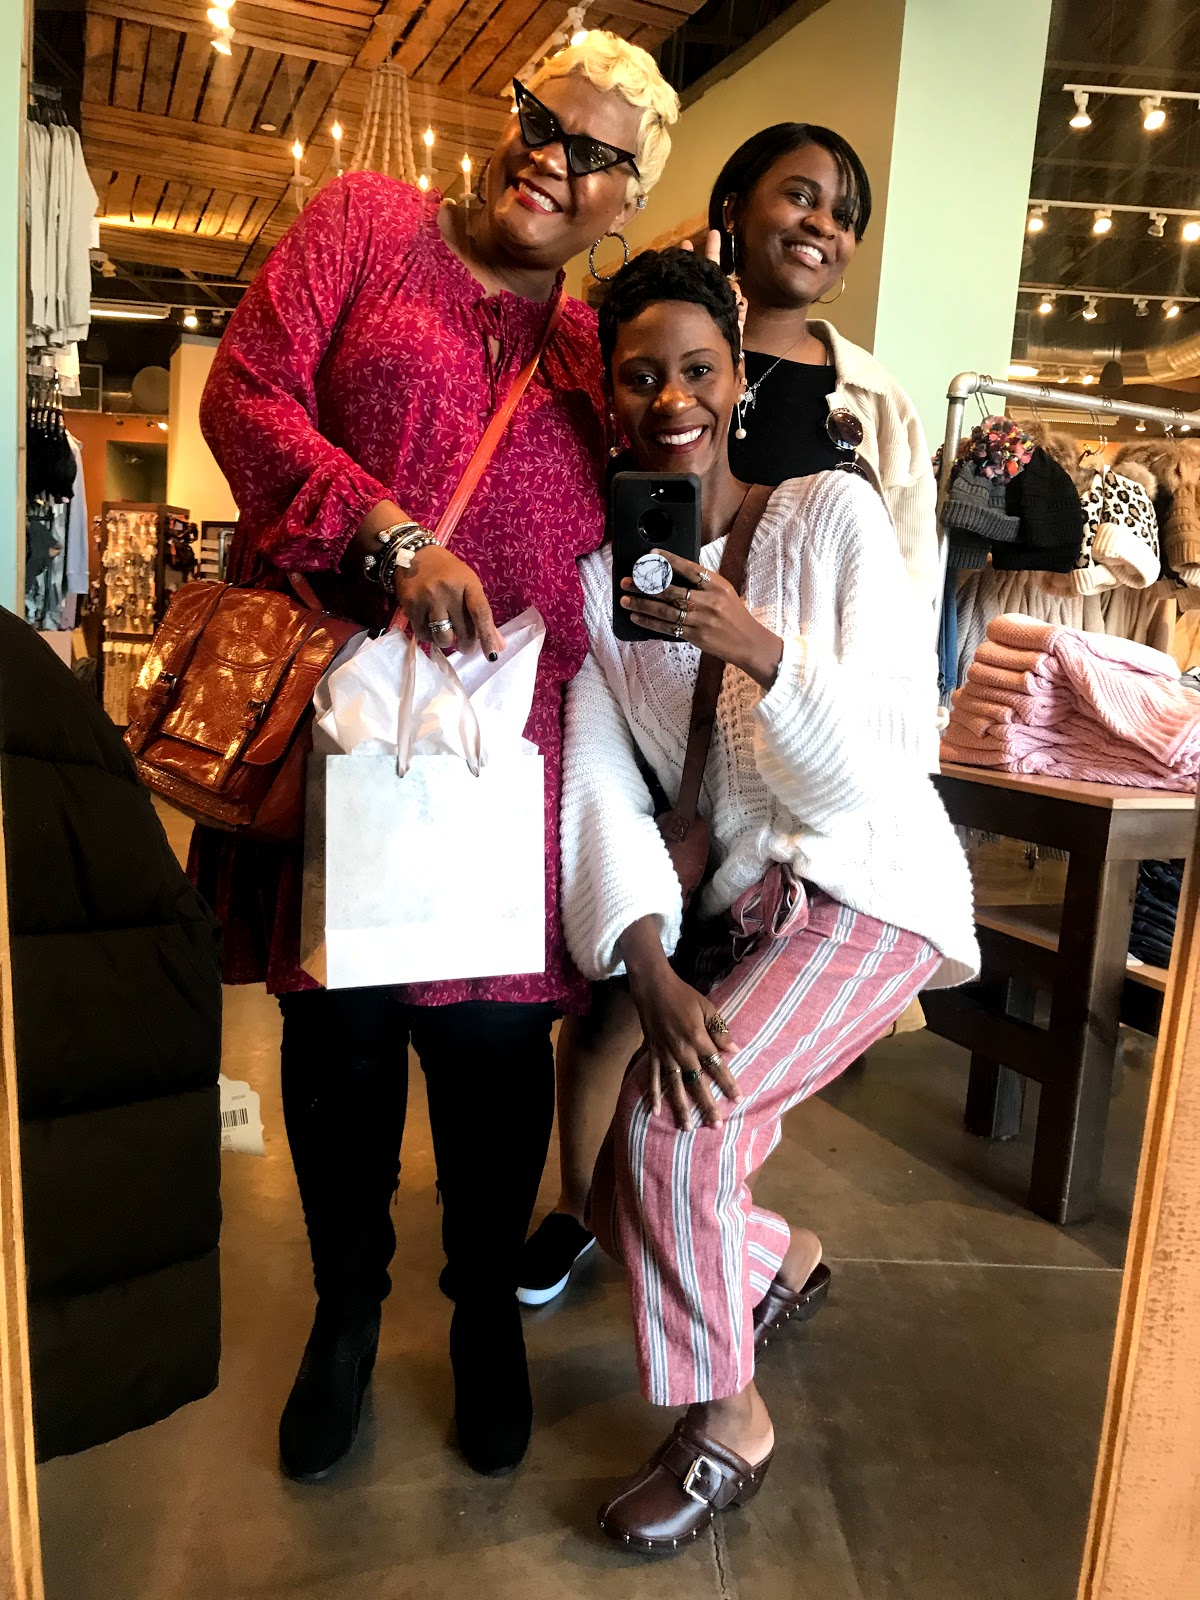 Tangie Bell taking mirror selfies with her daughters, shopping at the clothing stores.